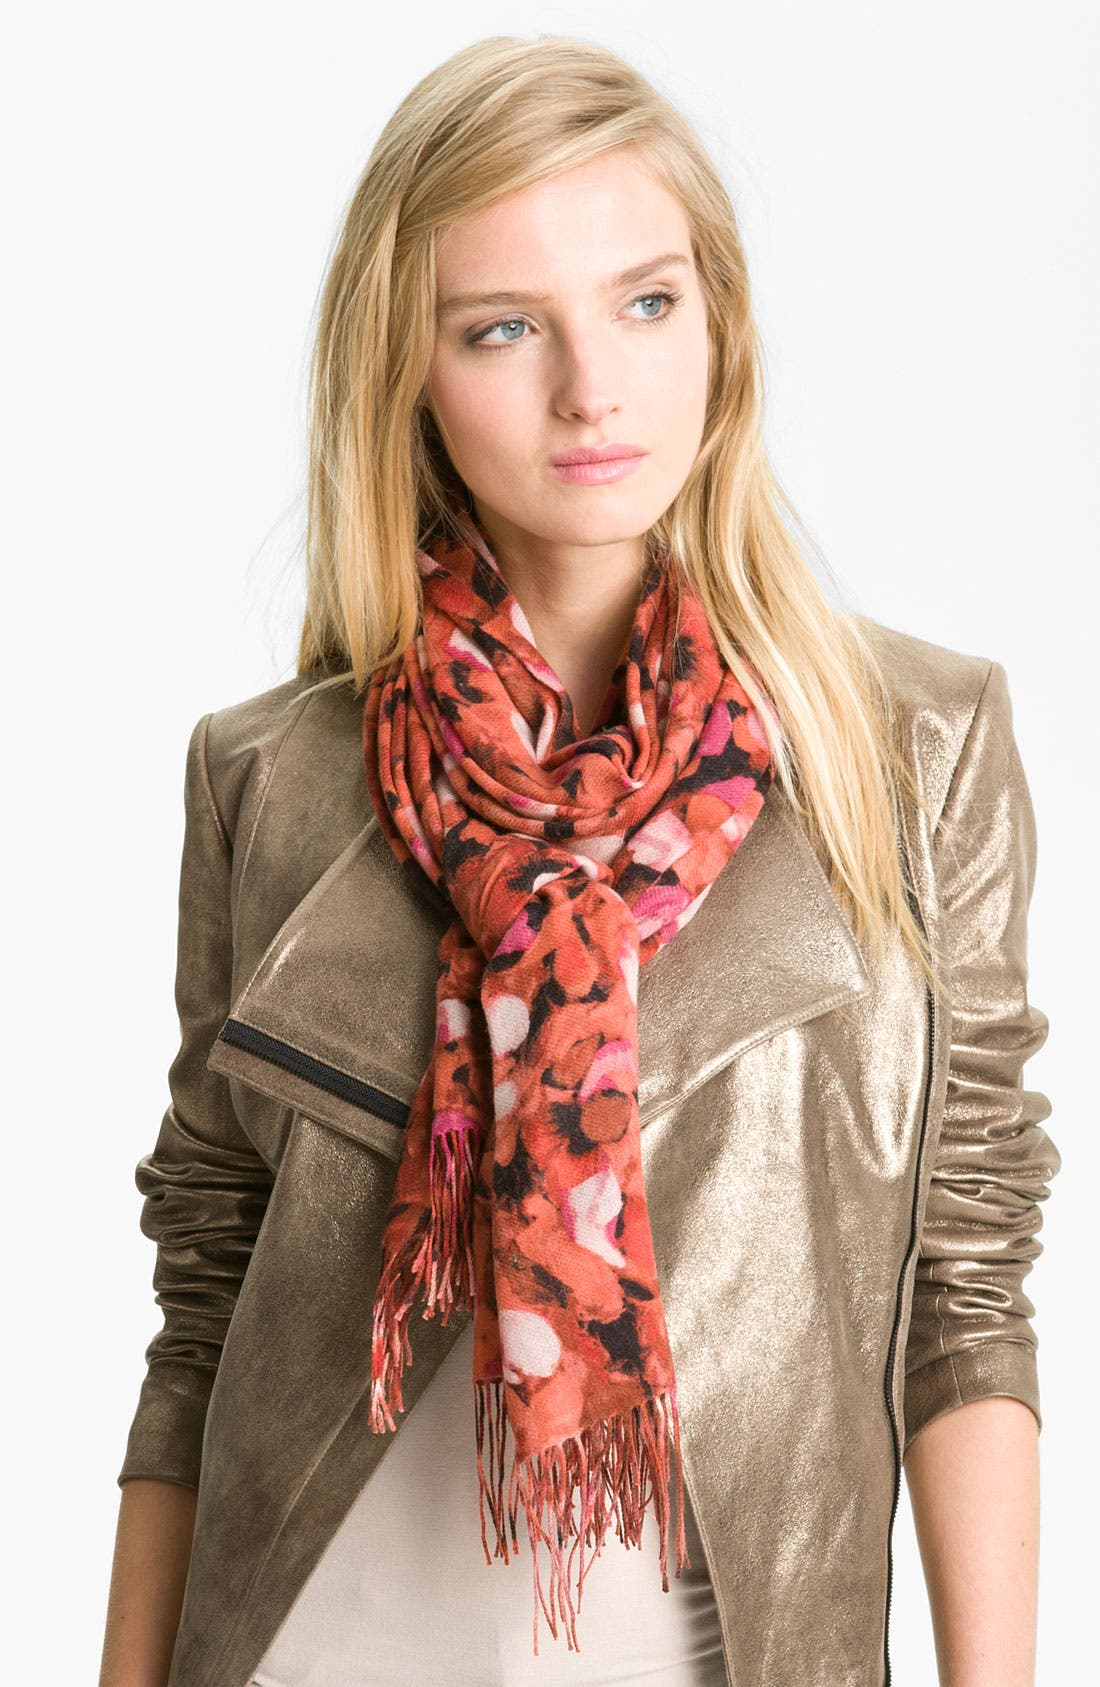 Alternate Image 1 Selected - Nordstrom 'Petals' Wool & Cashmere Wrap